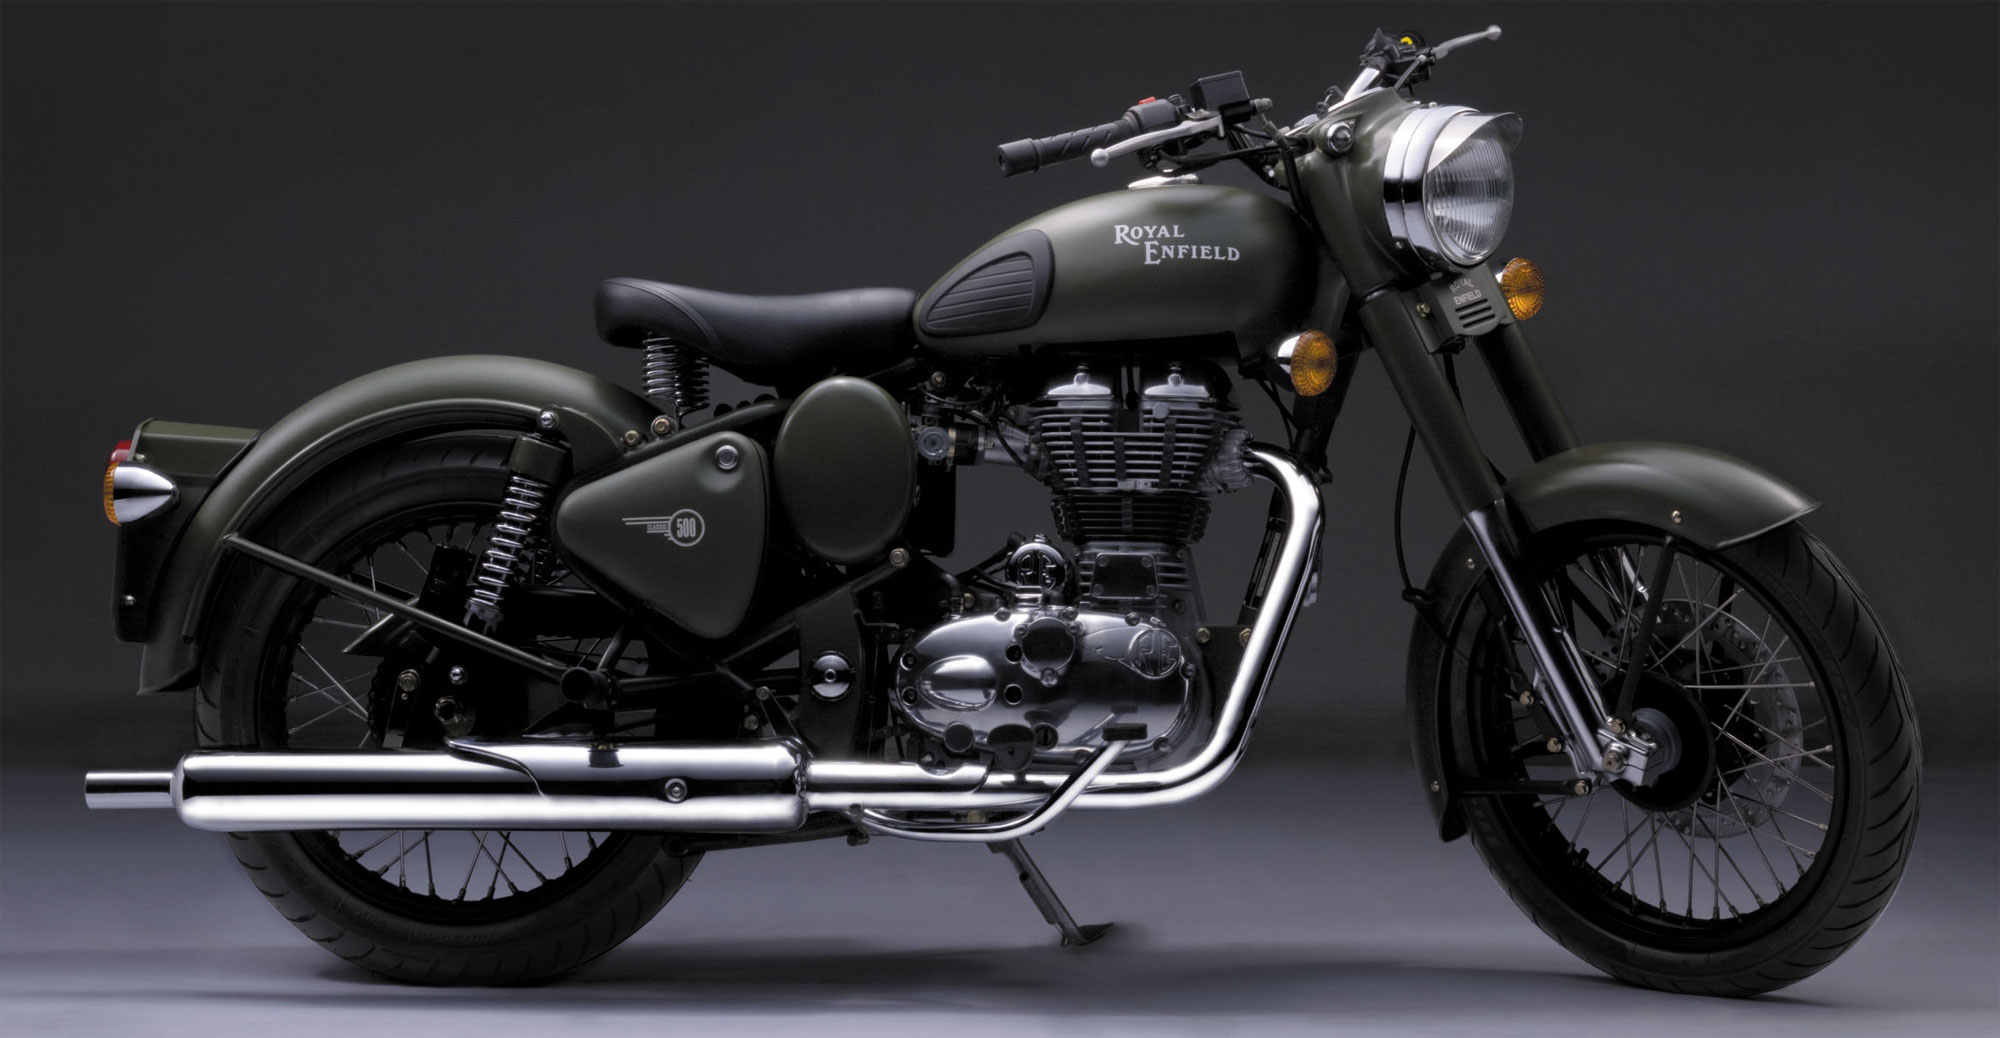 Royal Enfield Bullet 350 Army 1989 images #122471